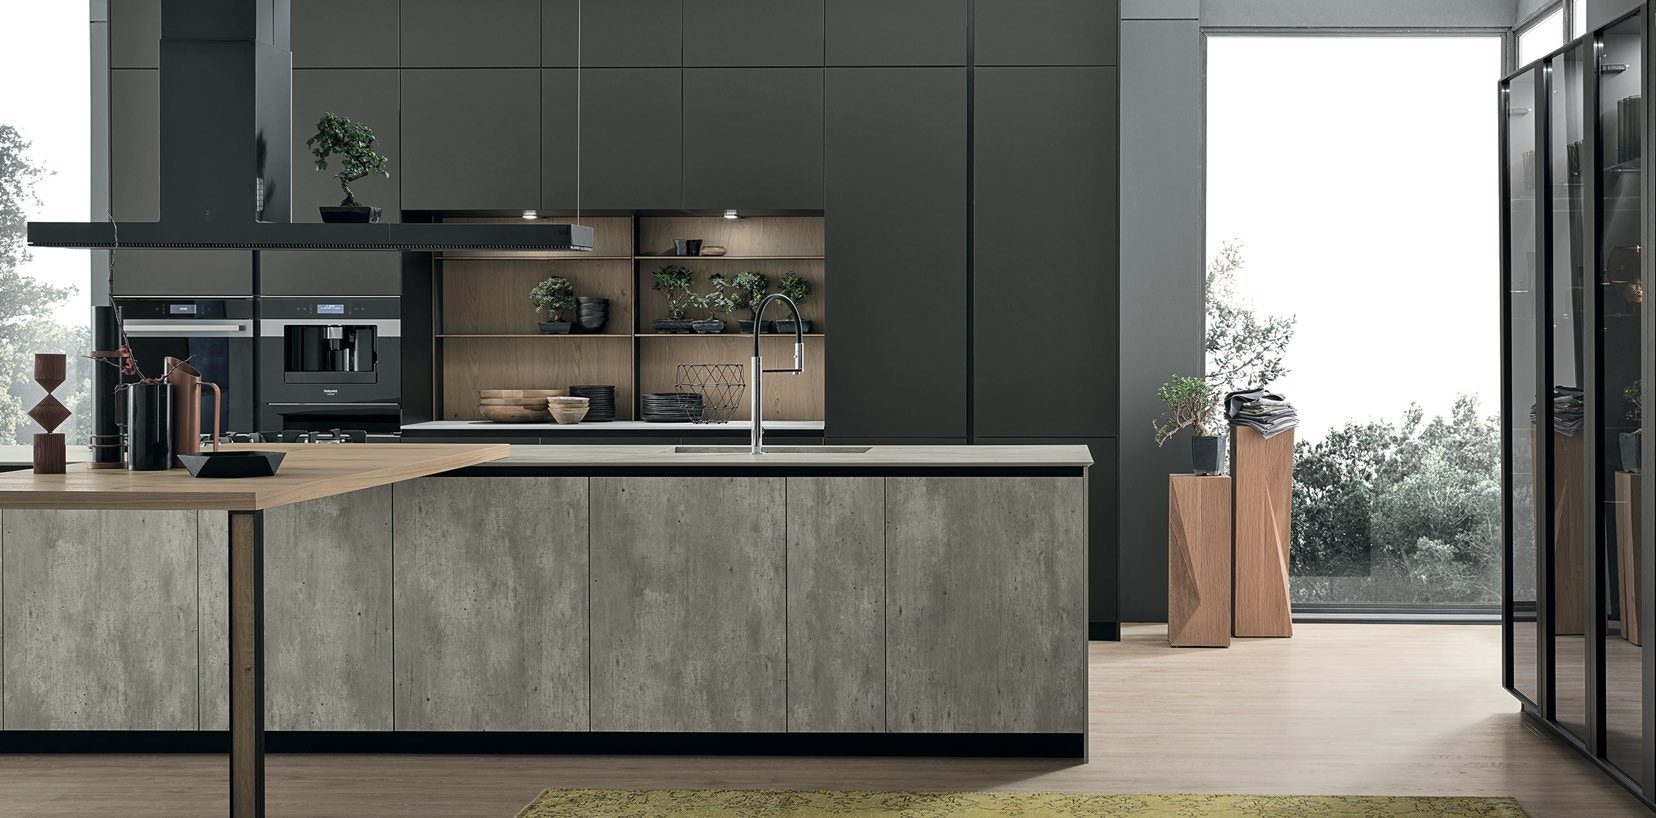 Cucine Moderne Stosa 2020.Stosa Cucine Modern And Classic Kitchens For Over 50 Years